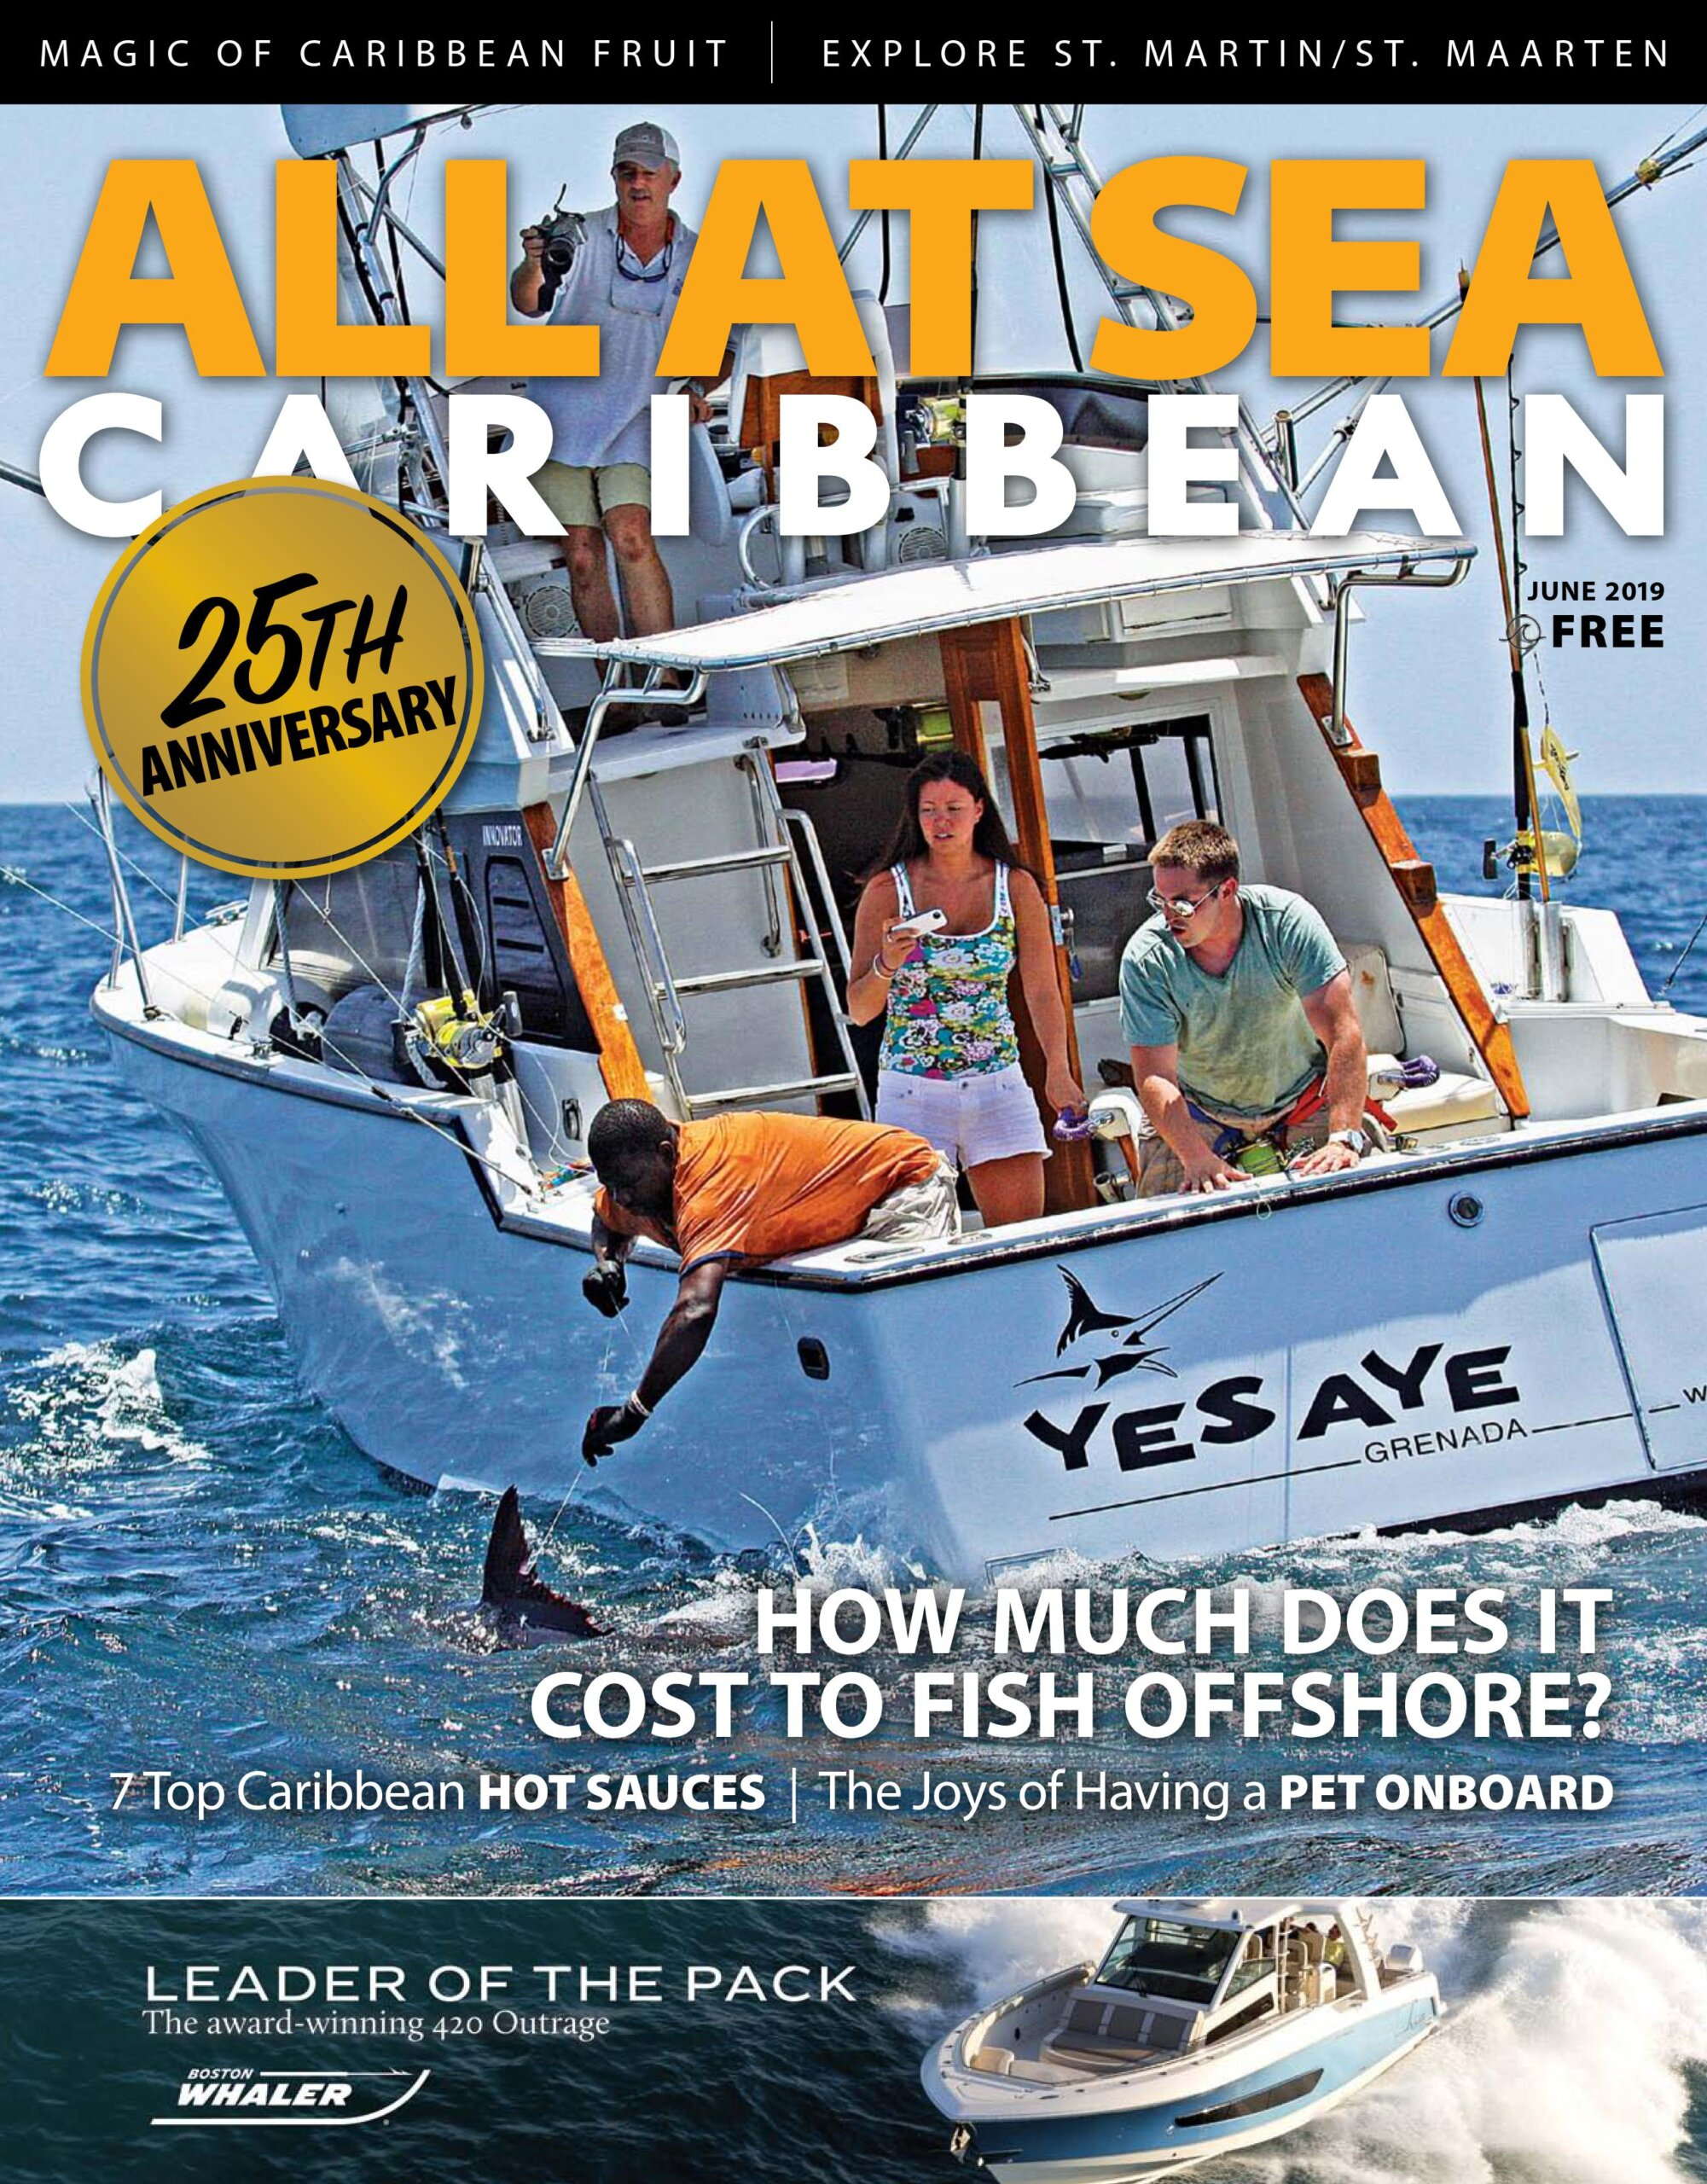 All At Sea - The Caribbean's Waterfront Magazine - June 2019